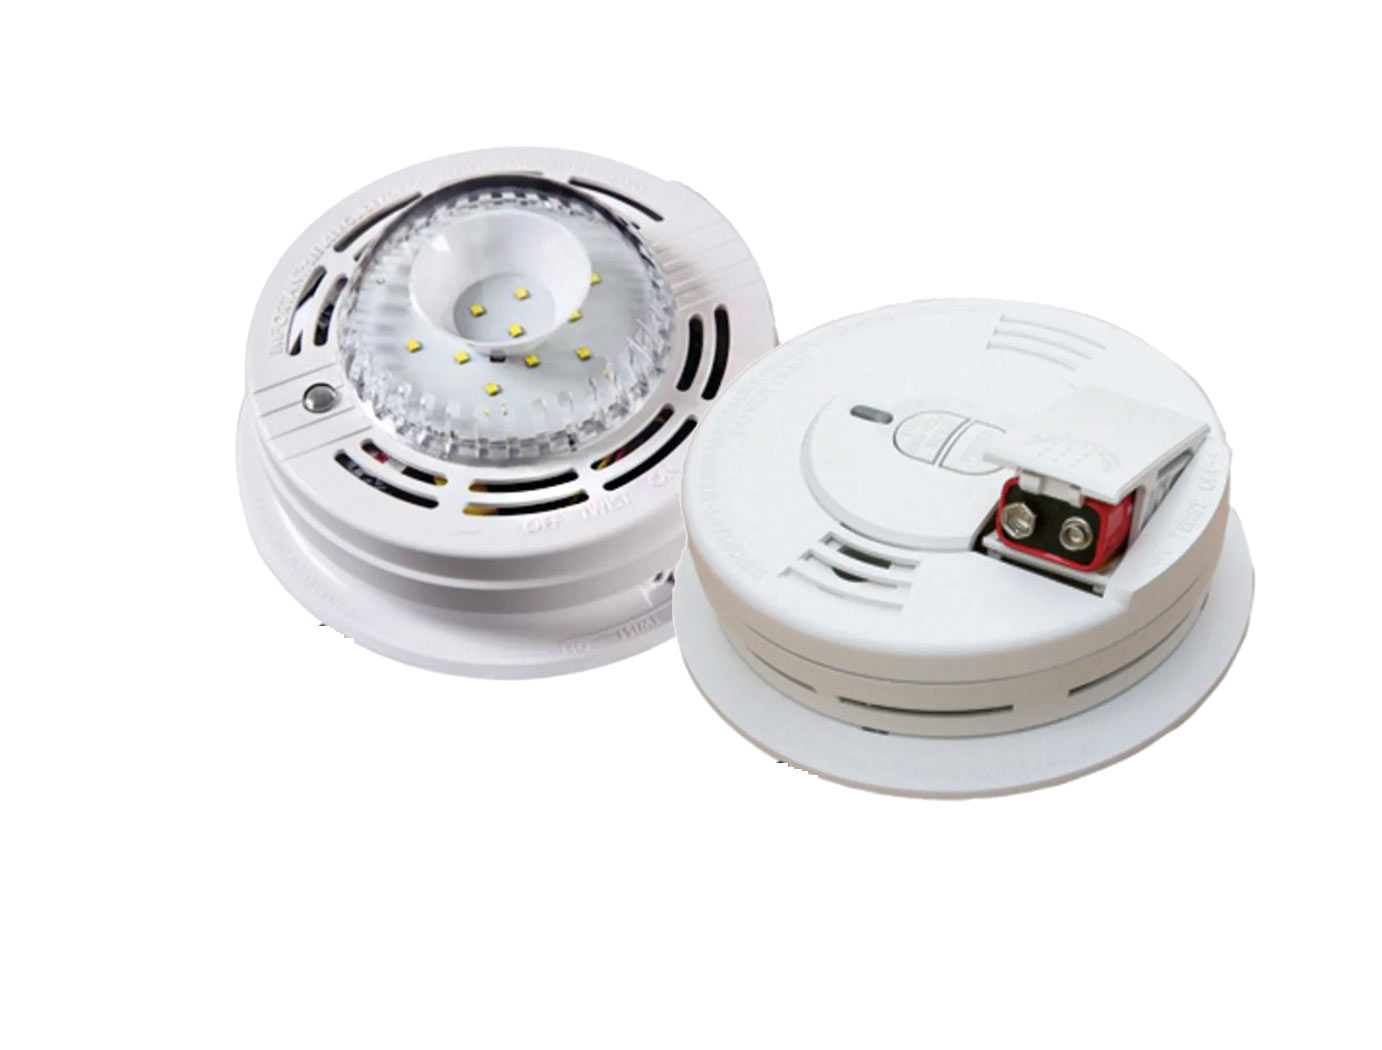 Kidde Smoke Alarm with Strobe Light Price: $120.95